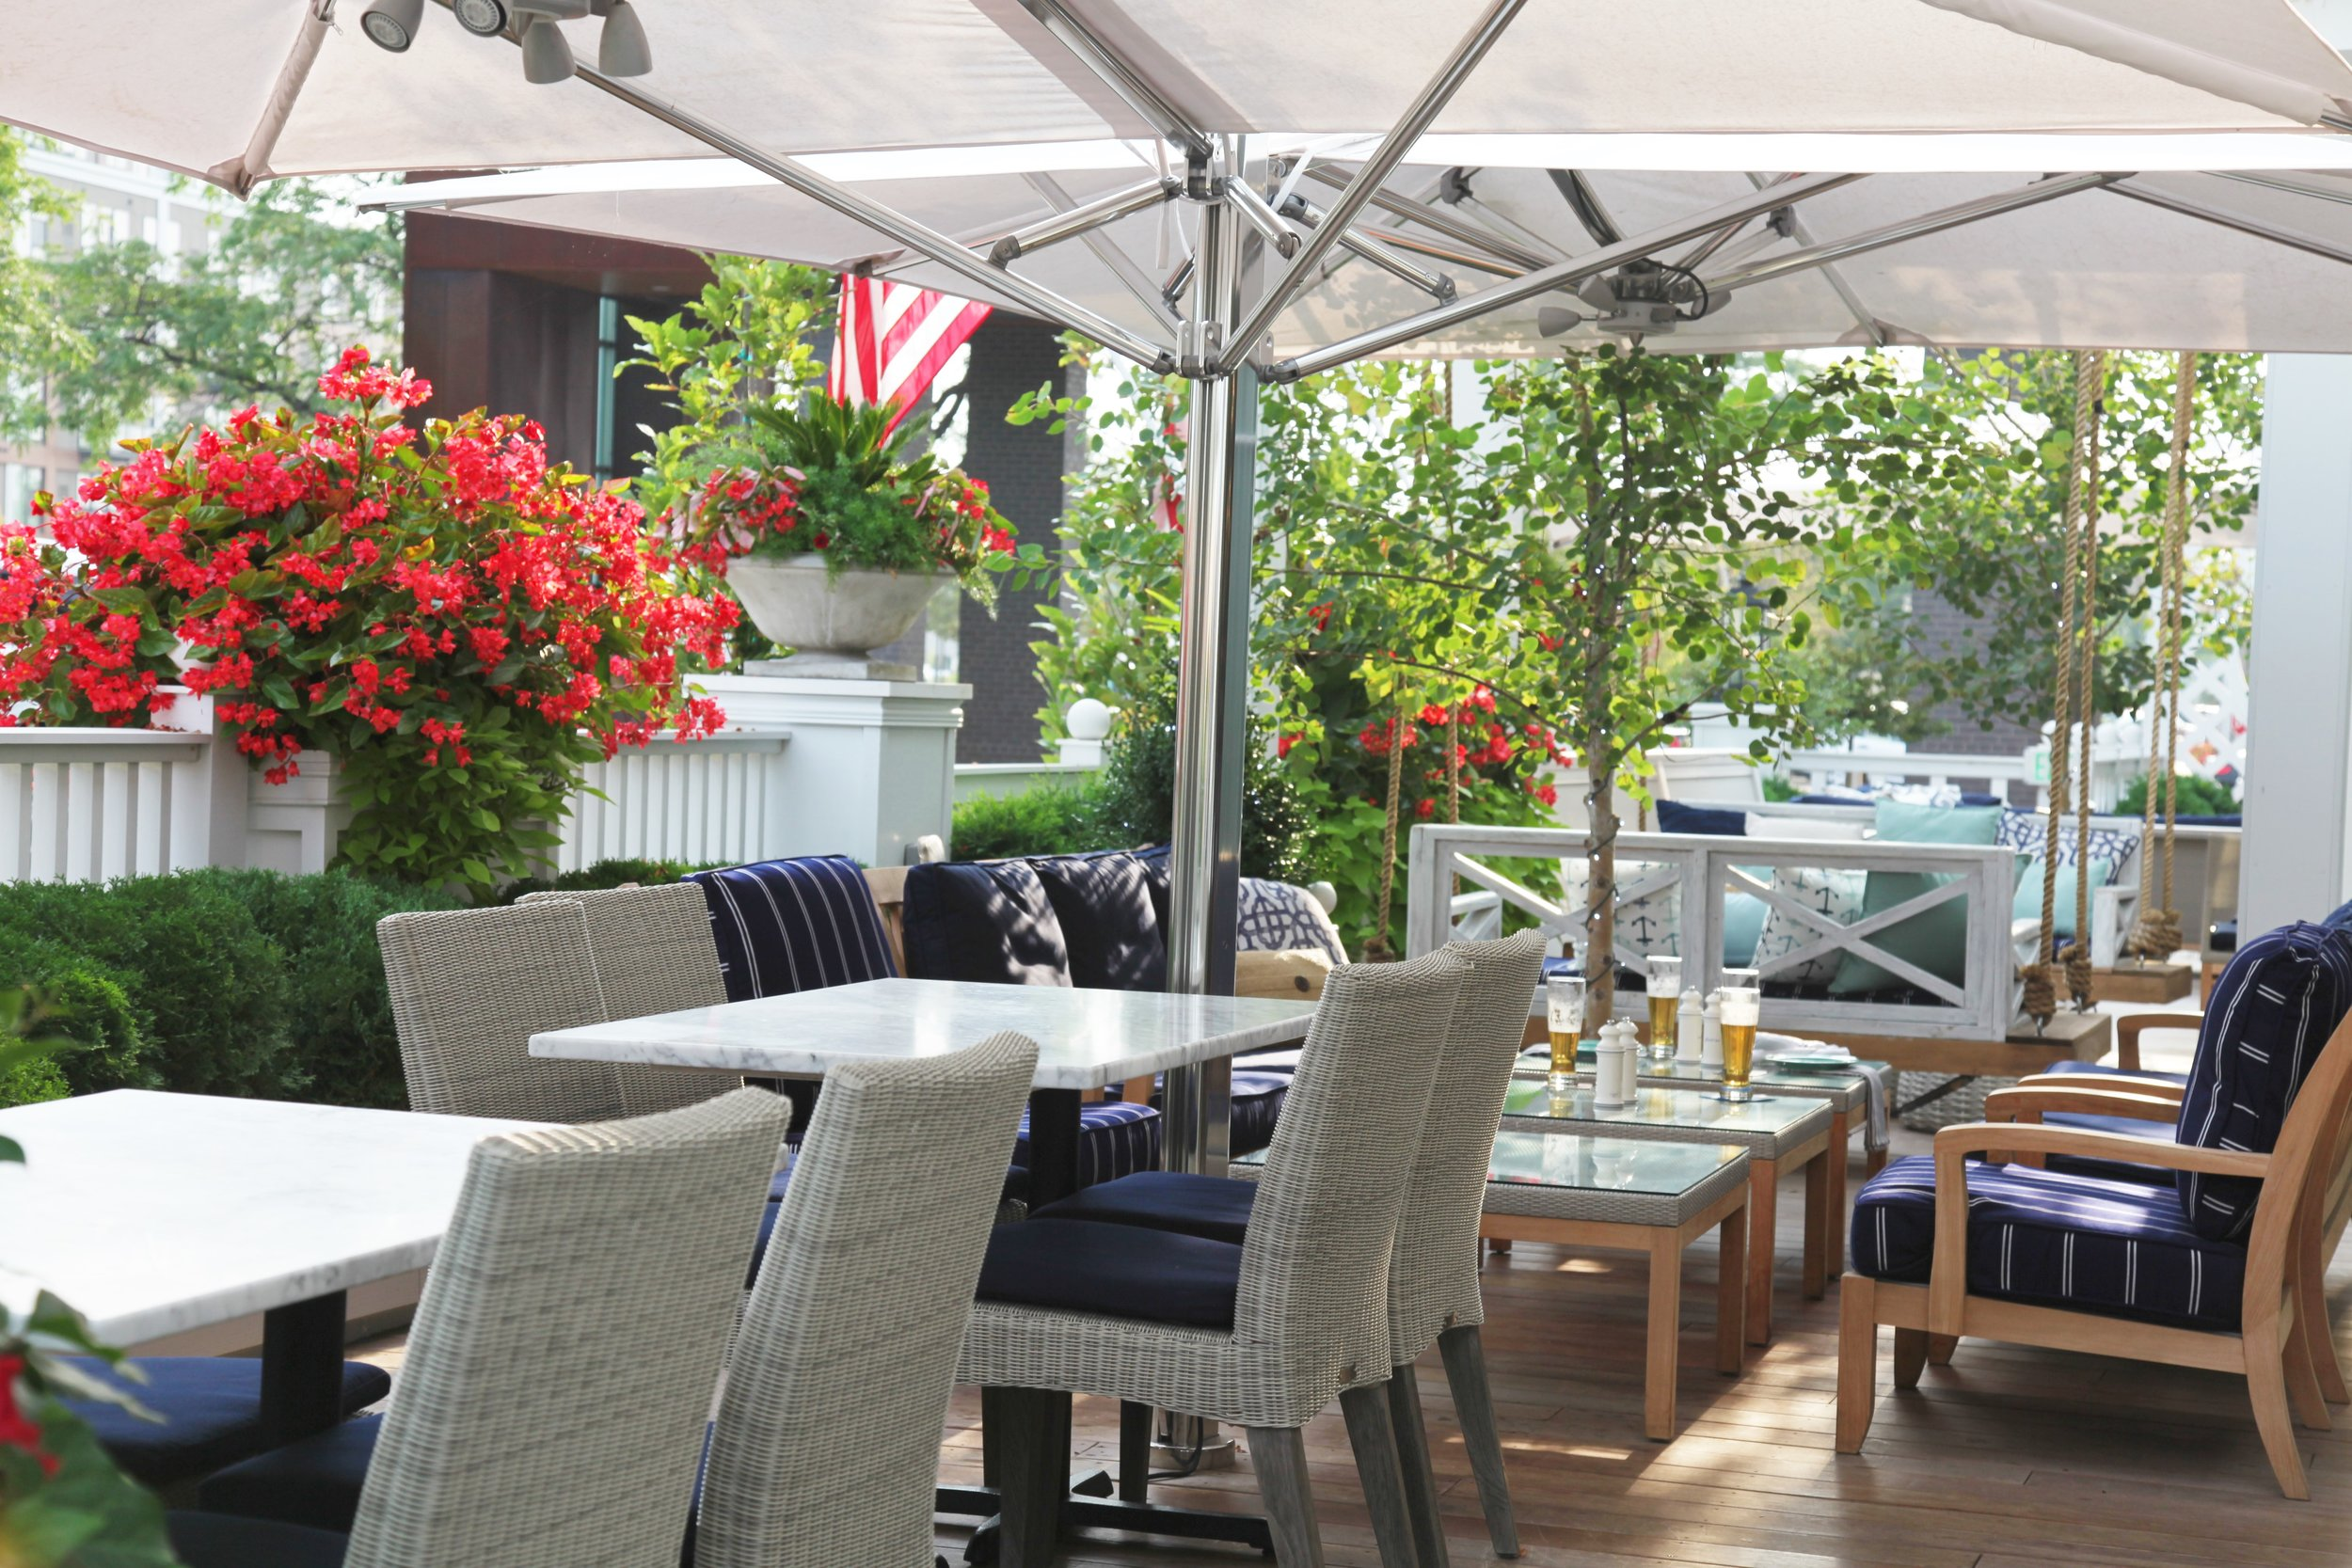 Mom's Design Build - Edina MN Outdoor Dining